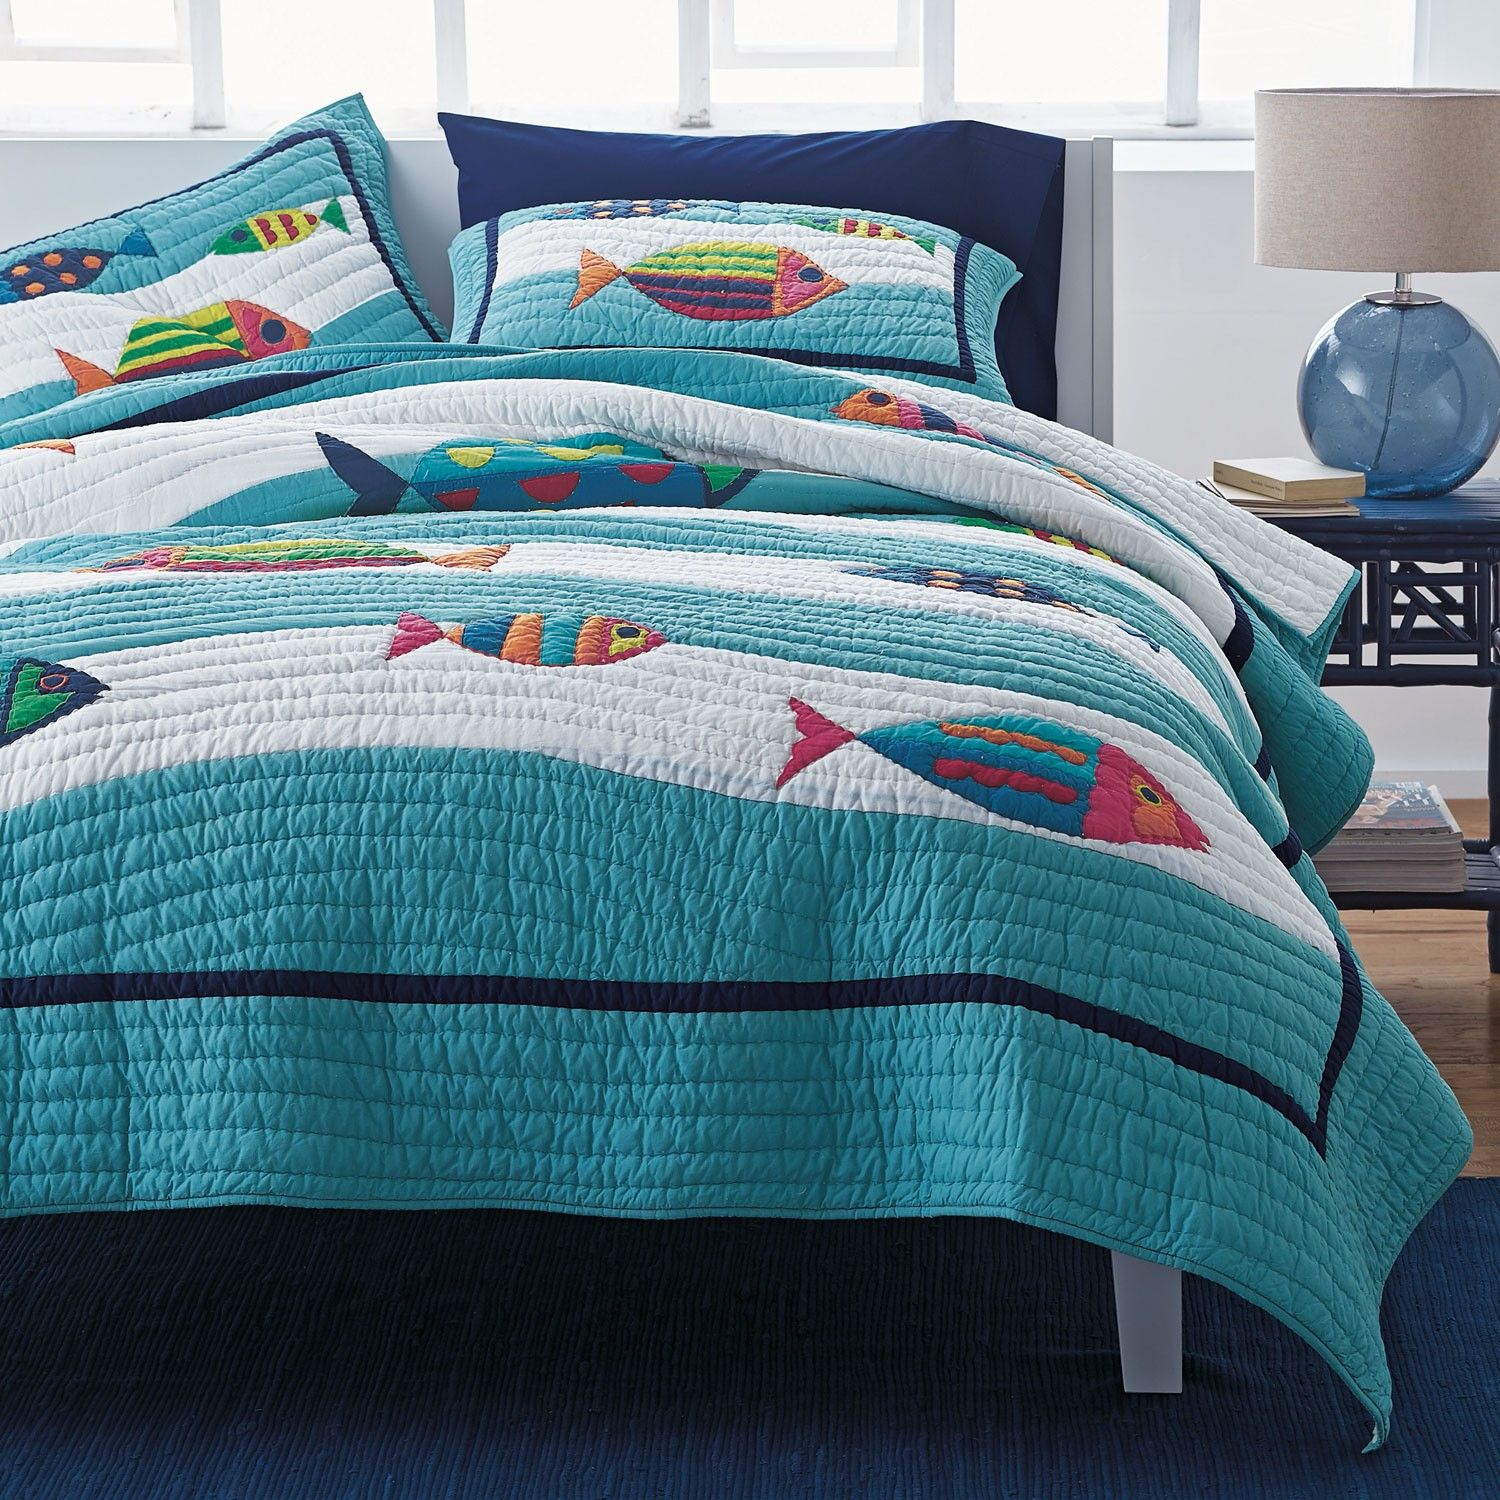 A lighthearted quilt for beach house or summer cottage